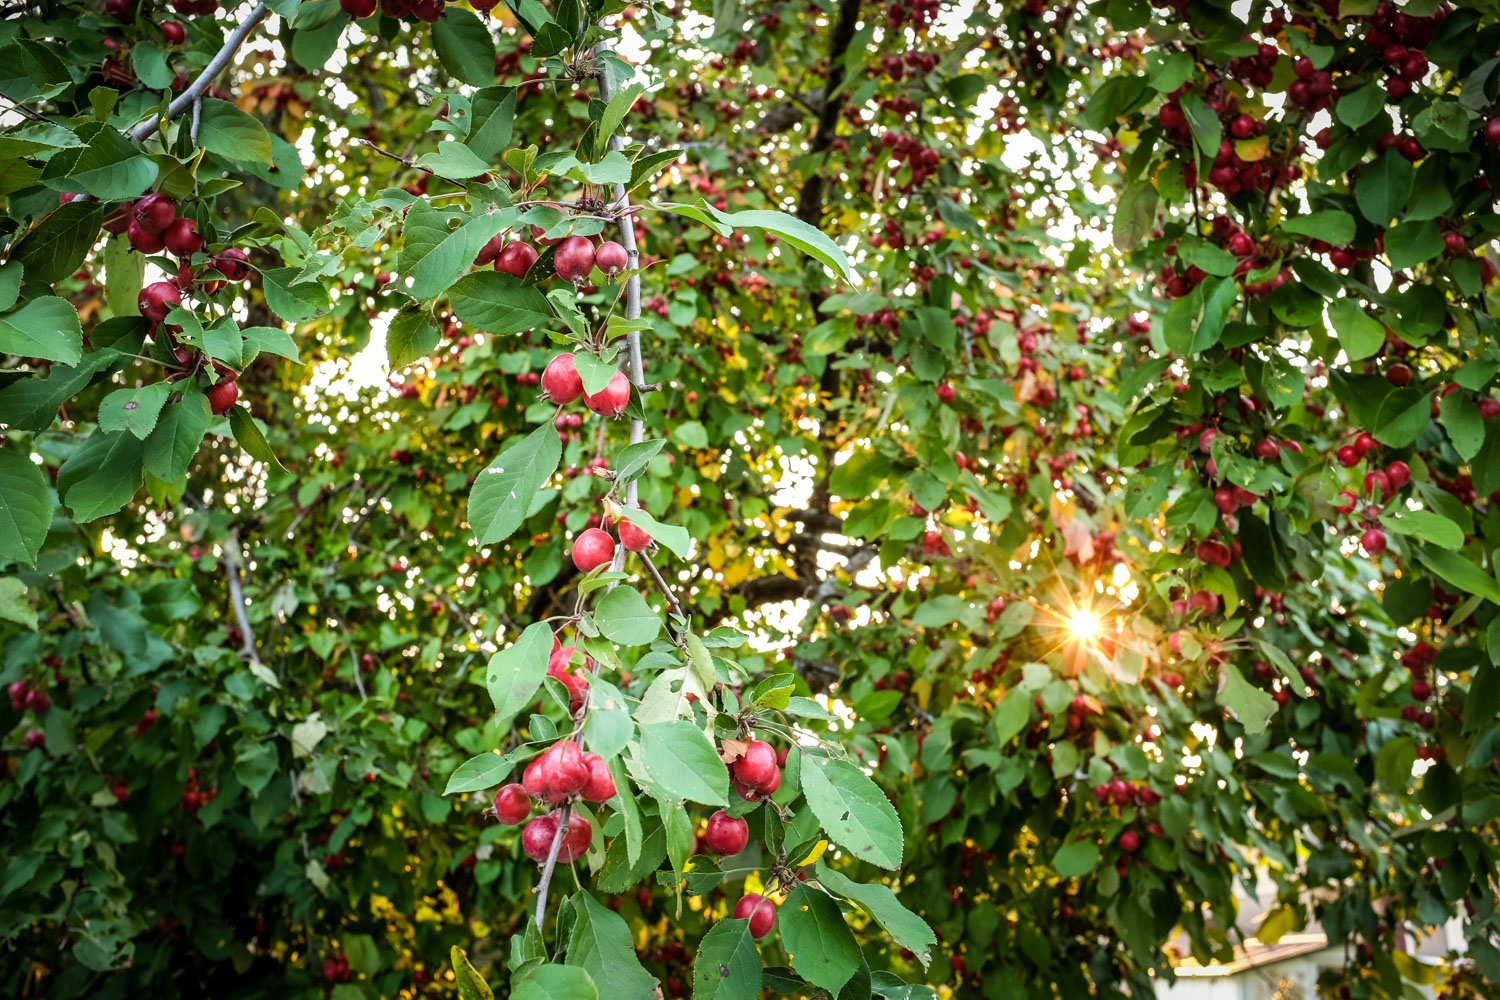 Image: The setting sun behind this crab apple tree caught my eye during a walk. I came back with my...